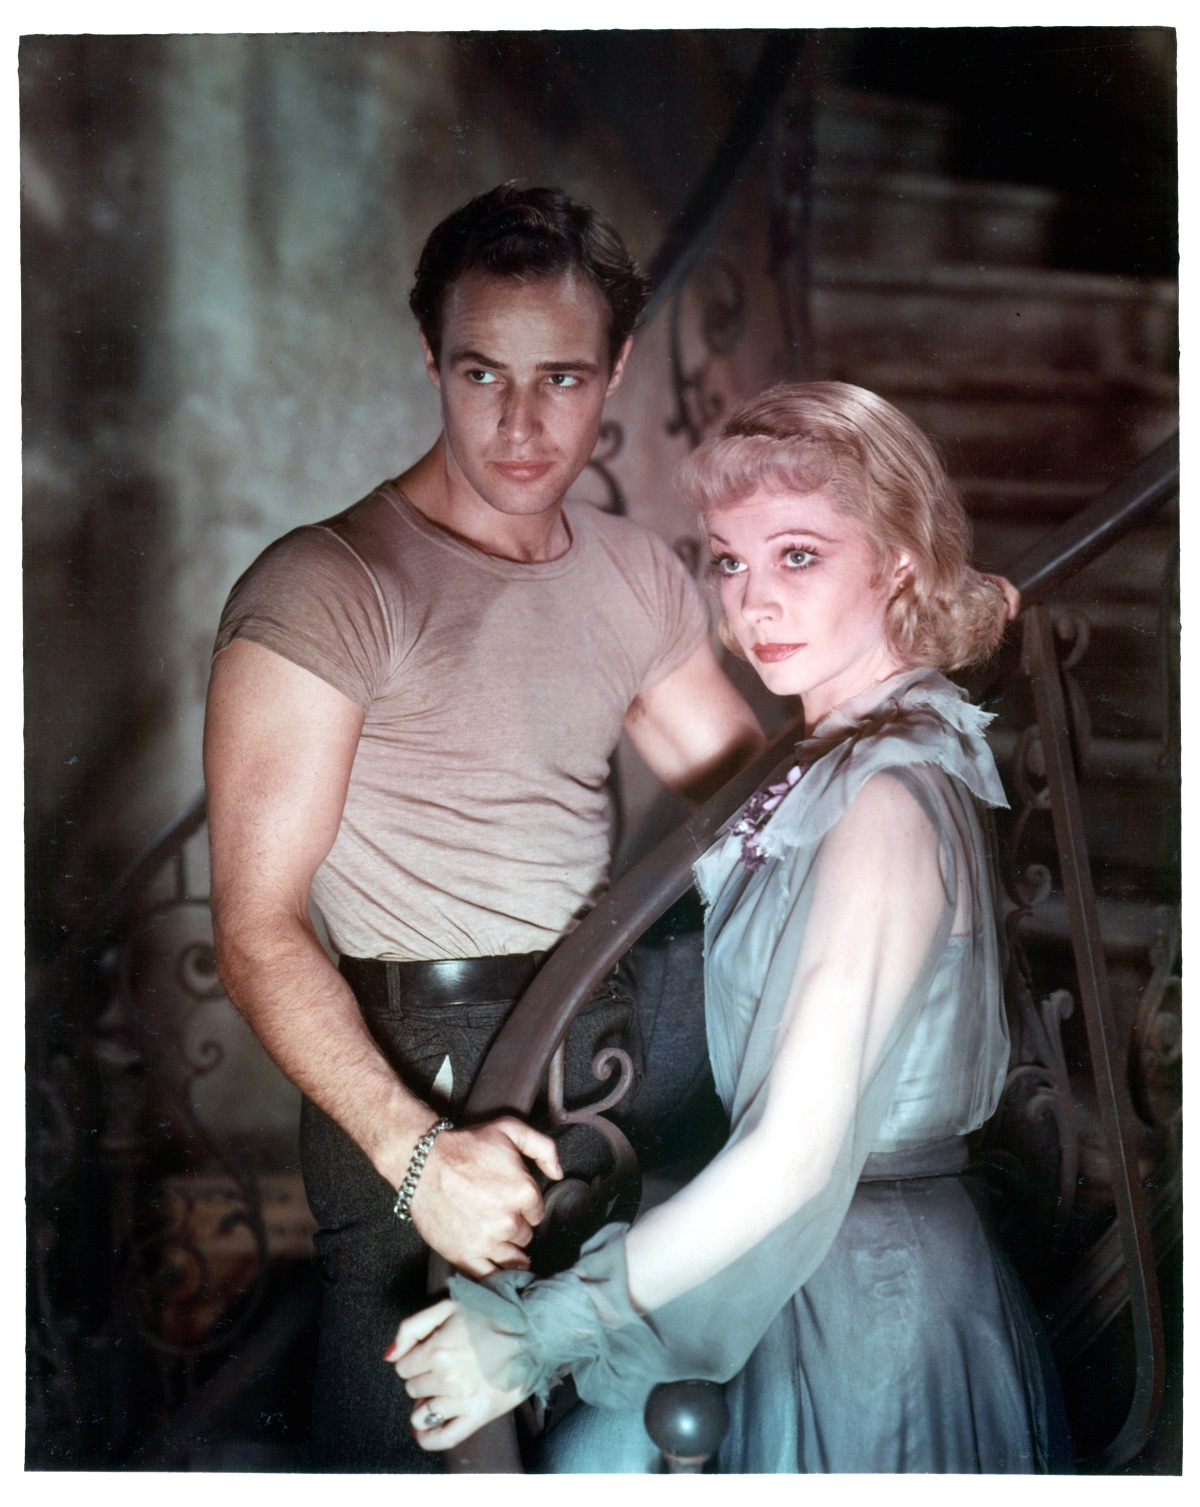 Marlon Brando with Vivien Leigh in 'A Streetcar Named Desire'